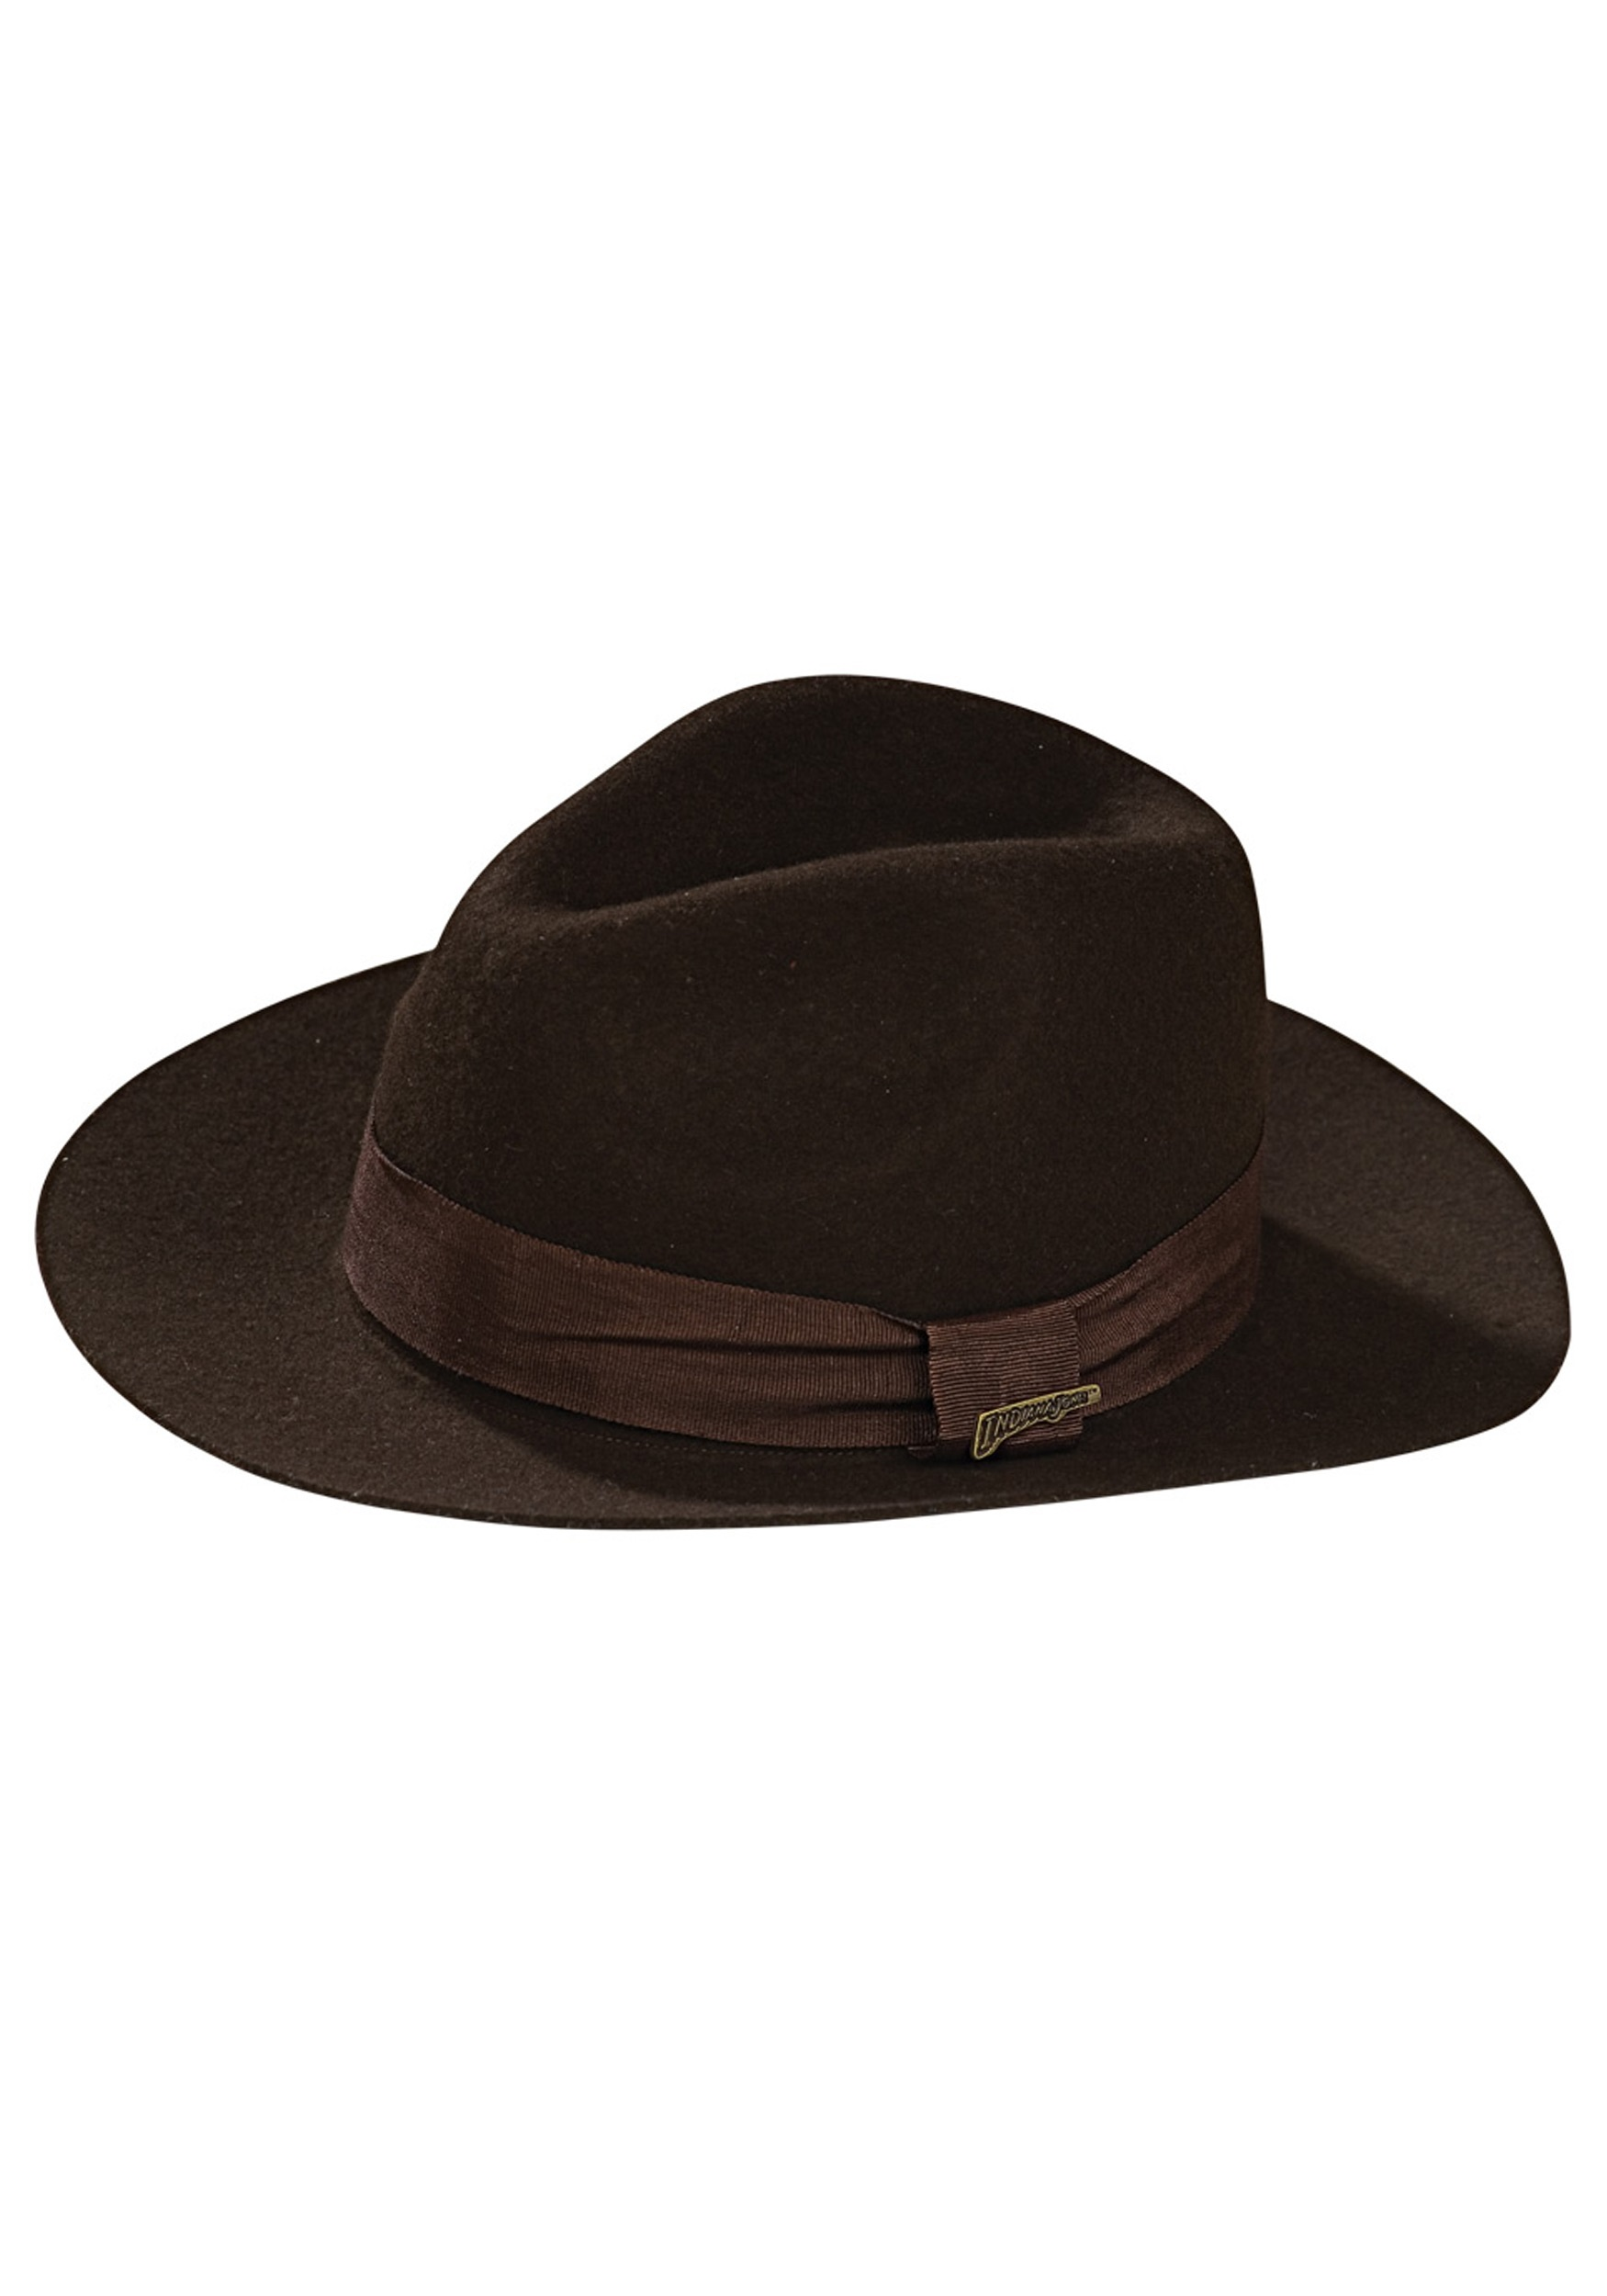 ... france kids deluxe indiana jones hat a6d93 f3bad 1ec47ec16814